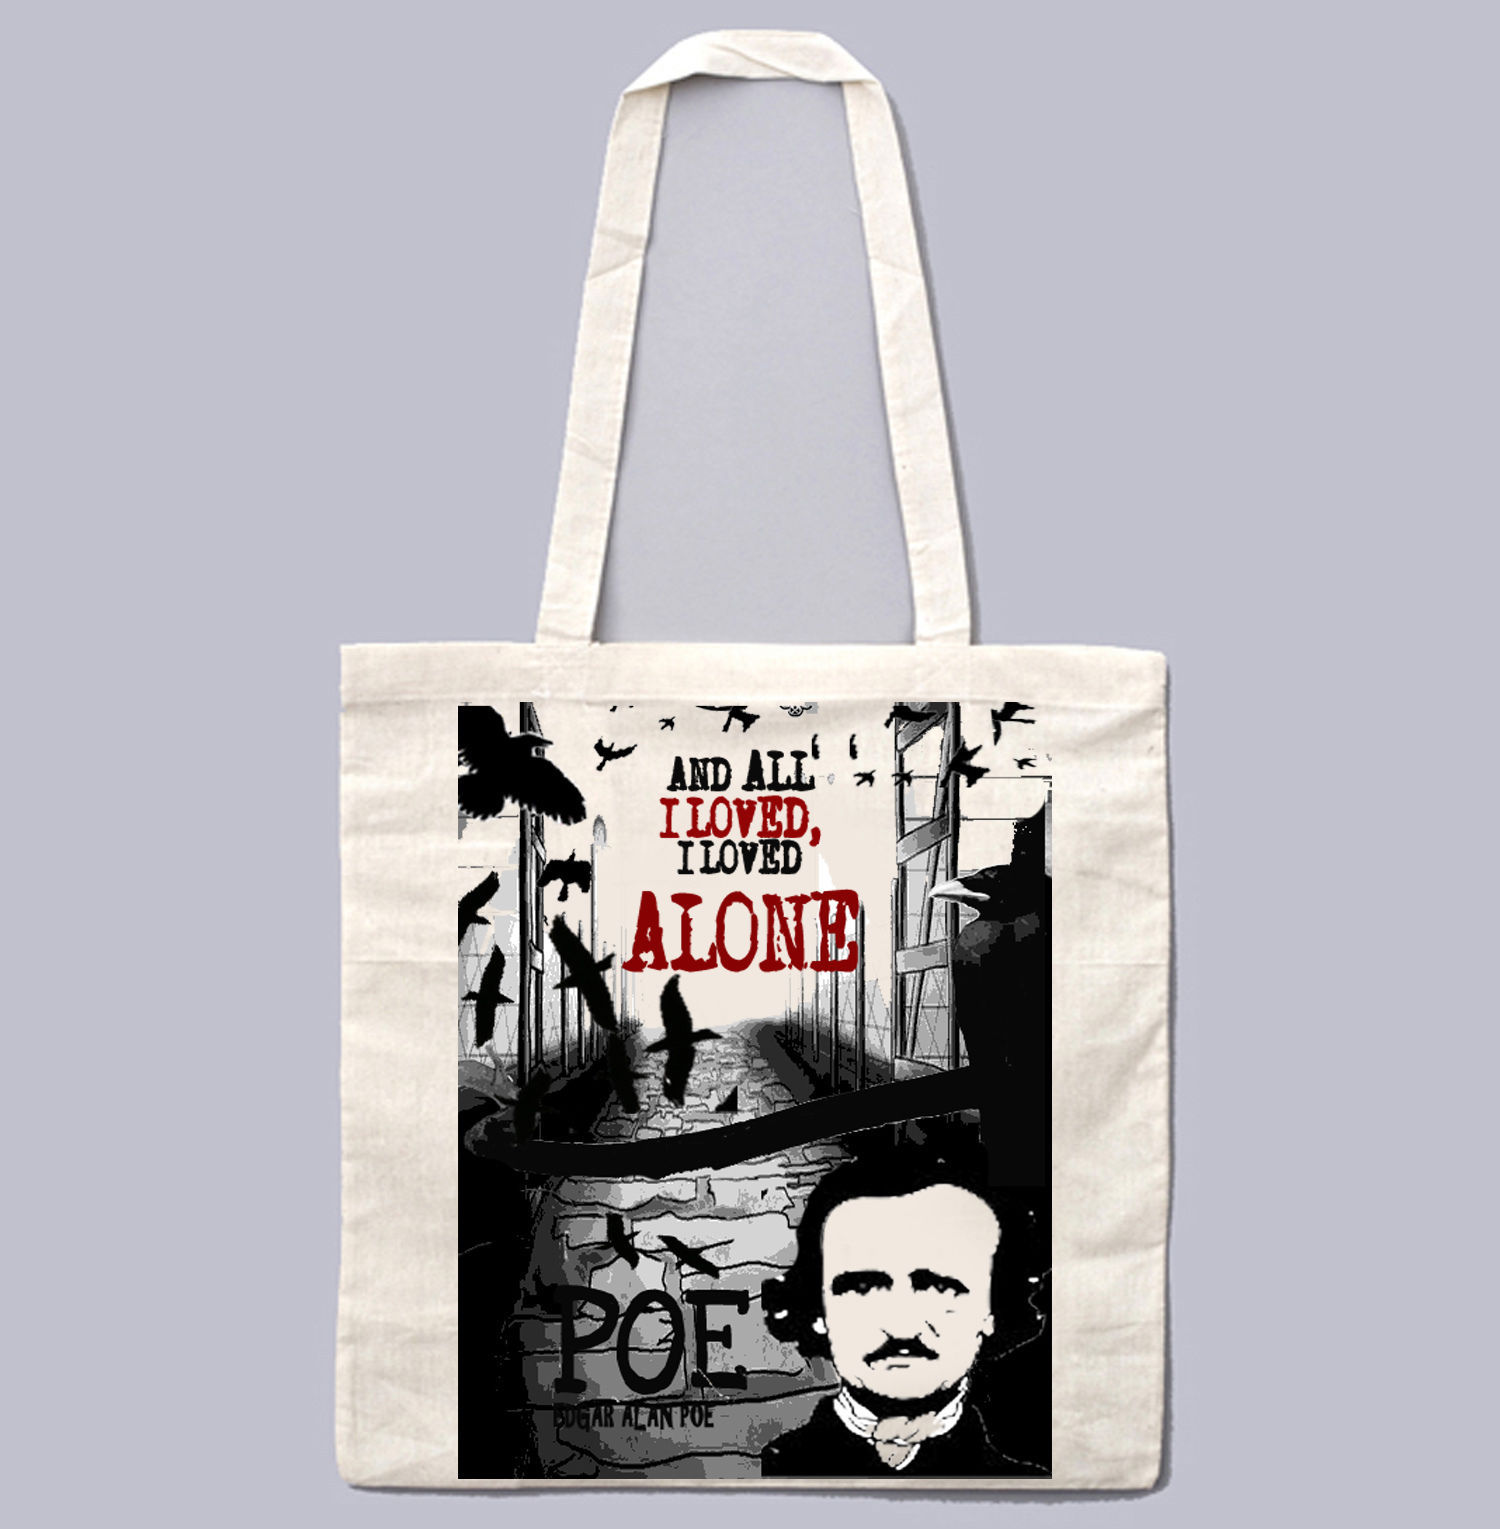 EDGAR ALAN POE I LOVED ALONE - NEW AMAZING GRAPHIC WHITE HAND BAG/TOTE BAG